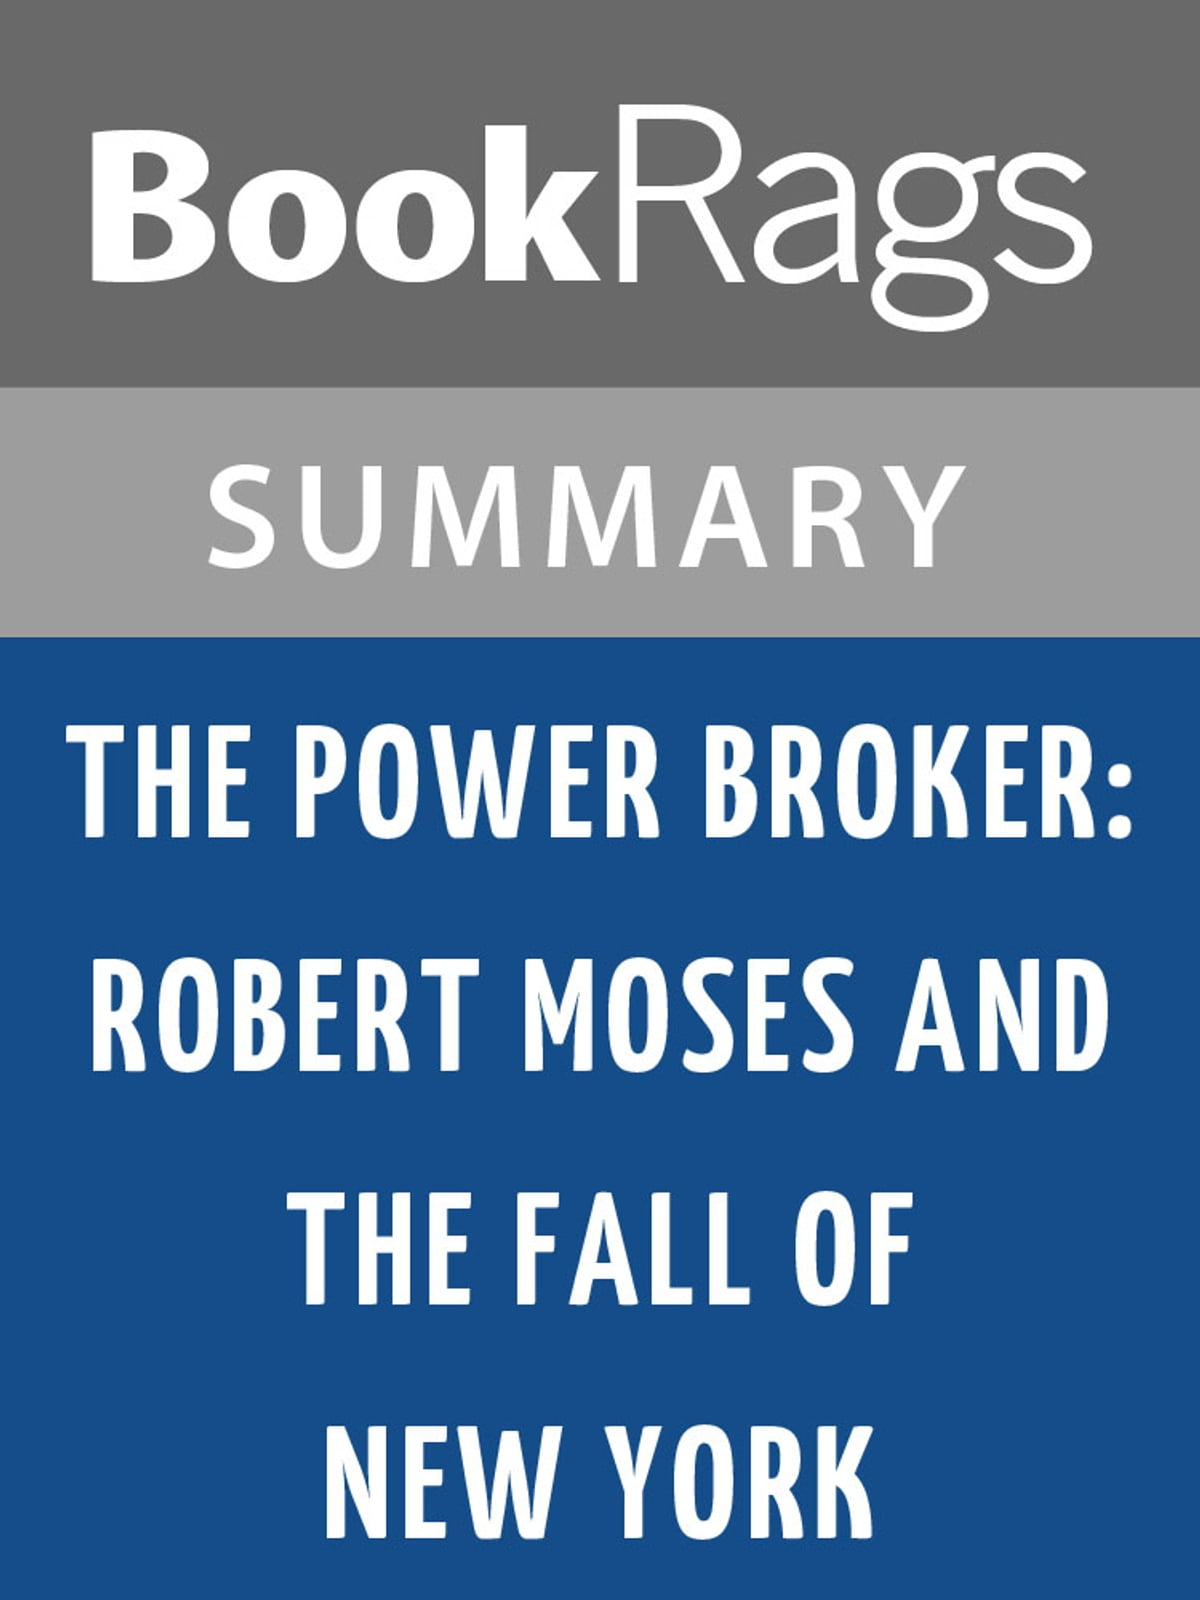 The Power Broker: Robert Moses And The Fall Of New York By Robert A Caro   Summary & Study Guide Ebook By Bookrags  1230000204881  Rakuten Kobo